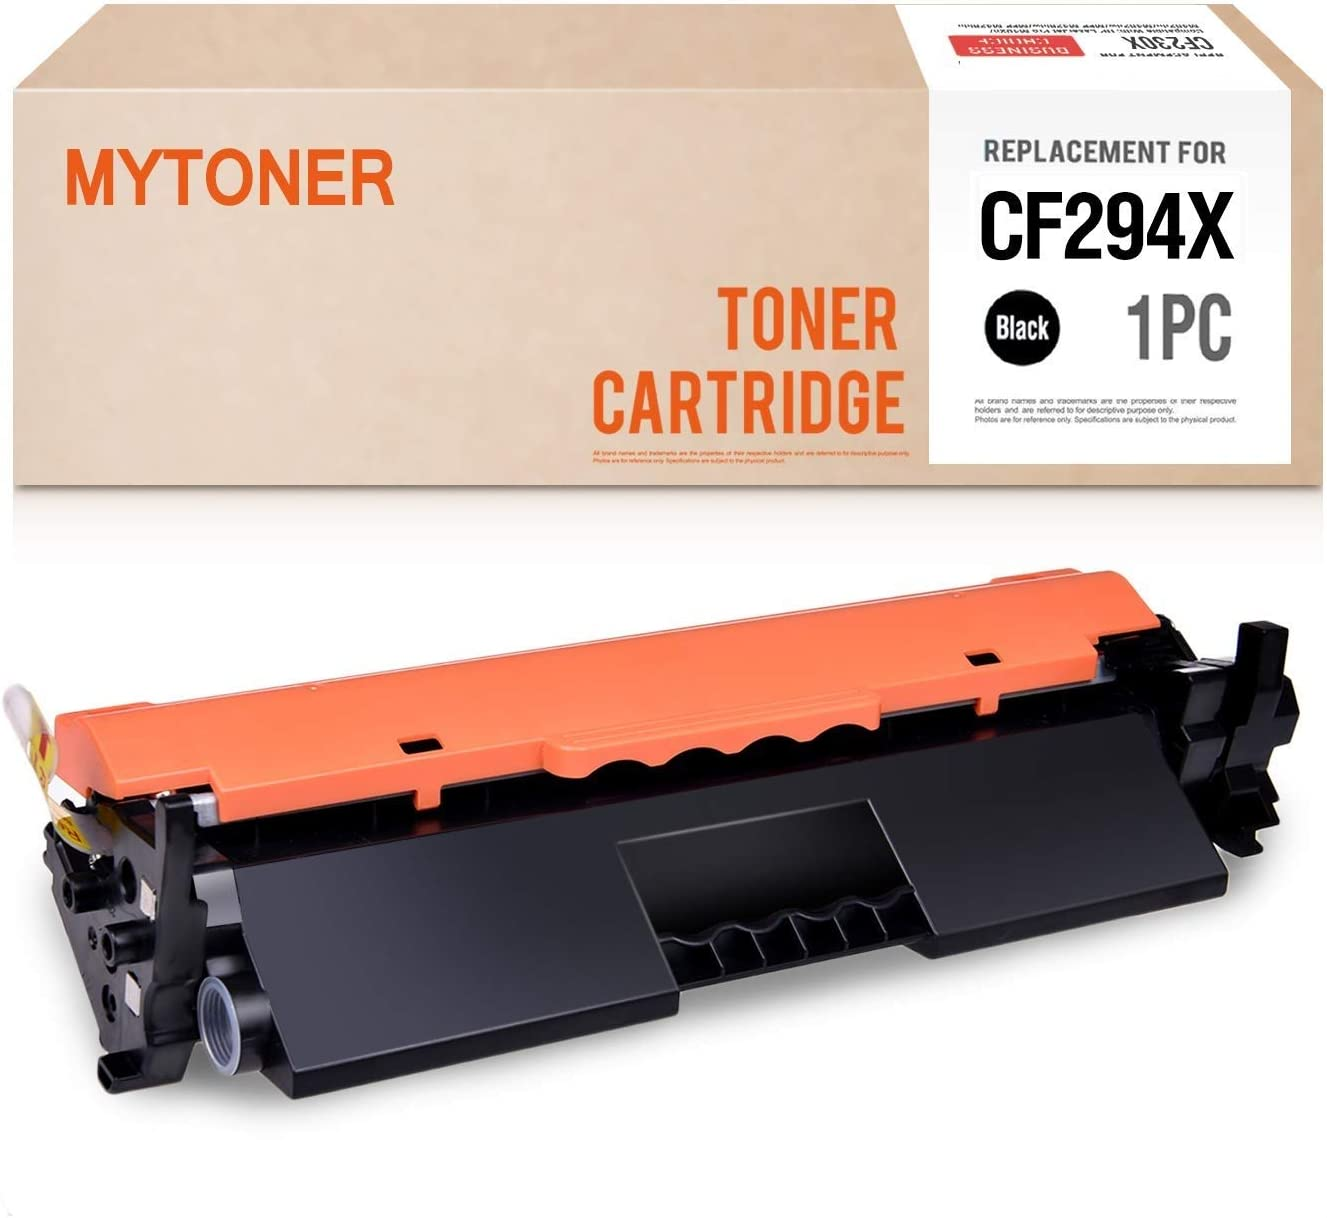 MYTONER Compatible Toner Cartridge Replacement for HP CF294X 94X CF294A 94A High Yield Toner for HP Laserjet Pro M118dw MFP M148dw M148fdw M149fdw Printer Ink (Black, 1-Pack)